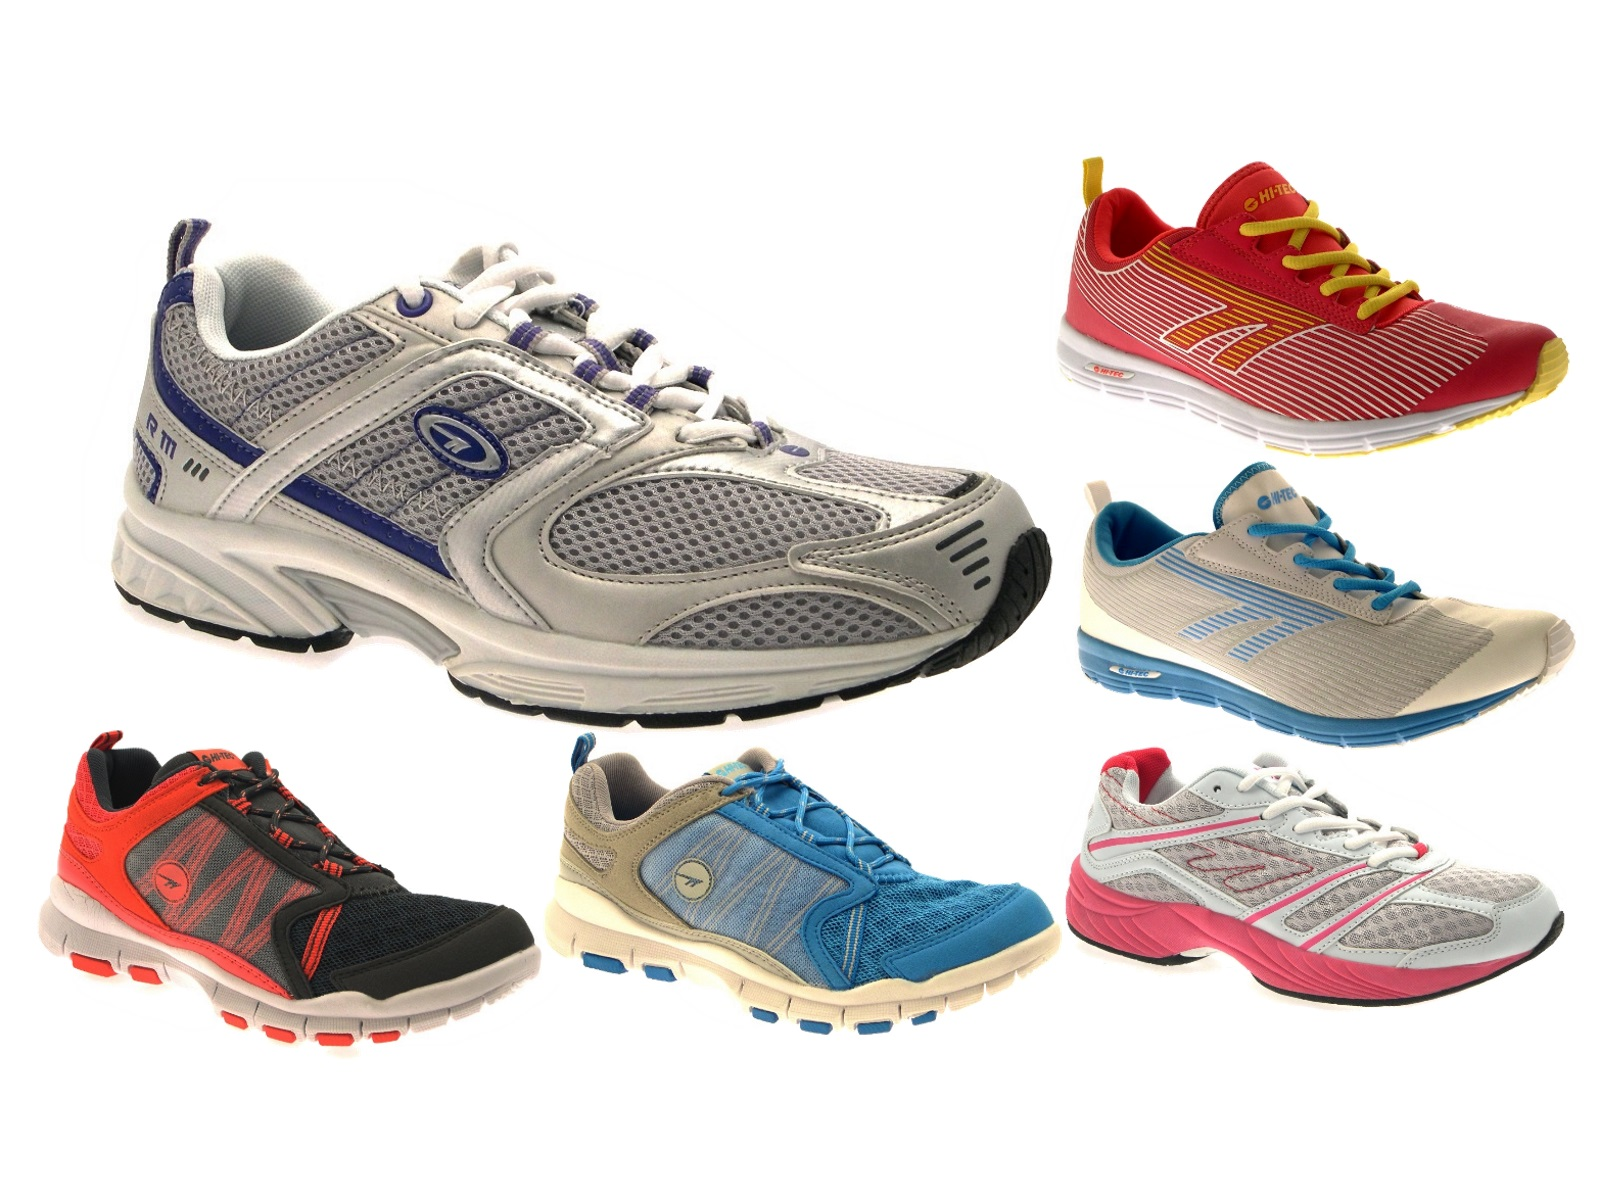 13822f6e80ff9 HI Tec Womens Sports Trainers Lace Up Gym Running Shoes Casual Pumps Size  UK 3-8